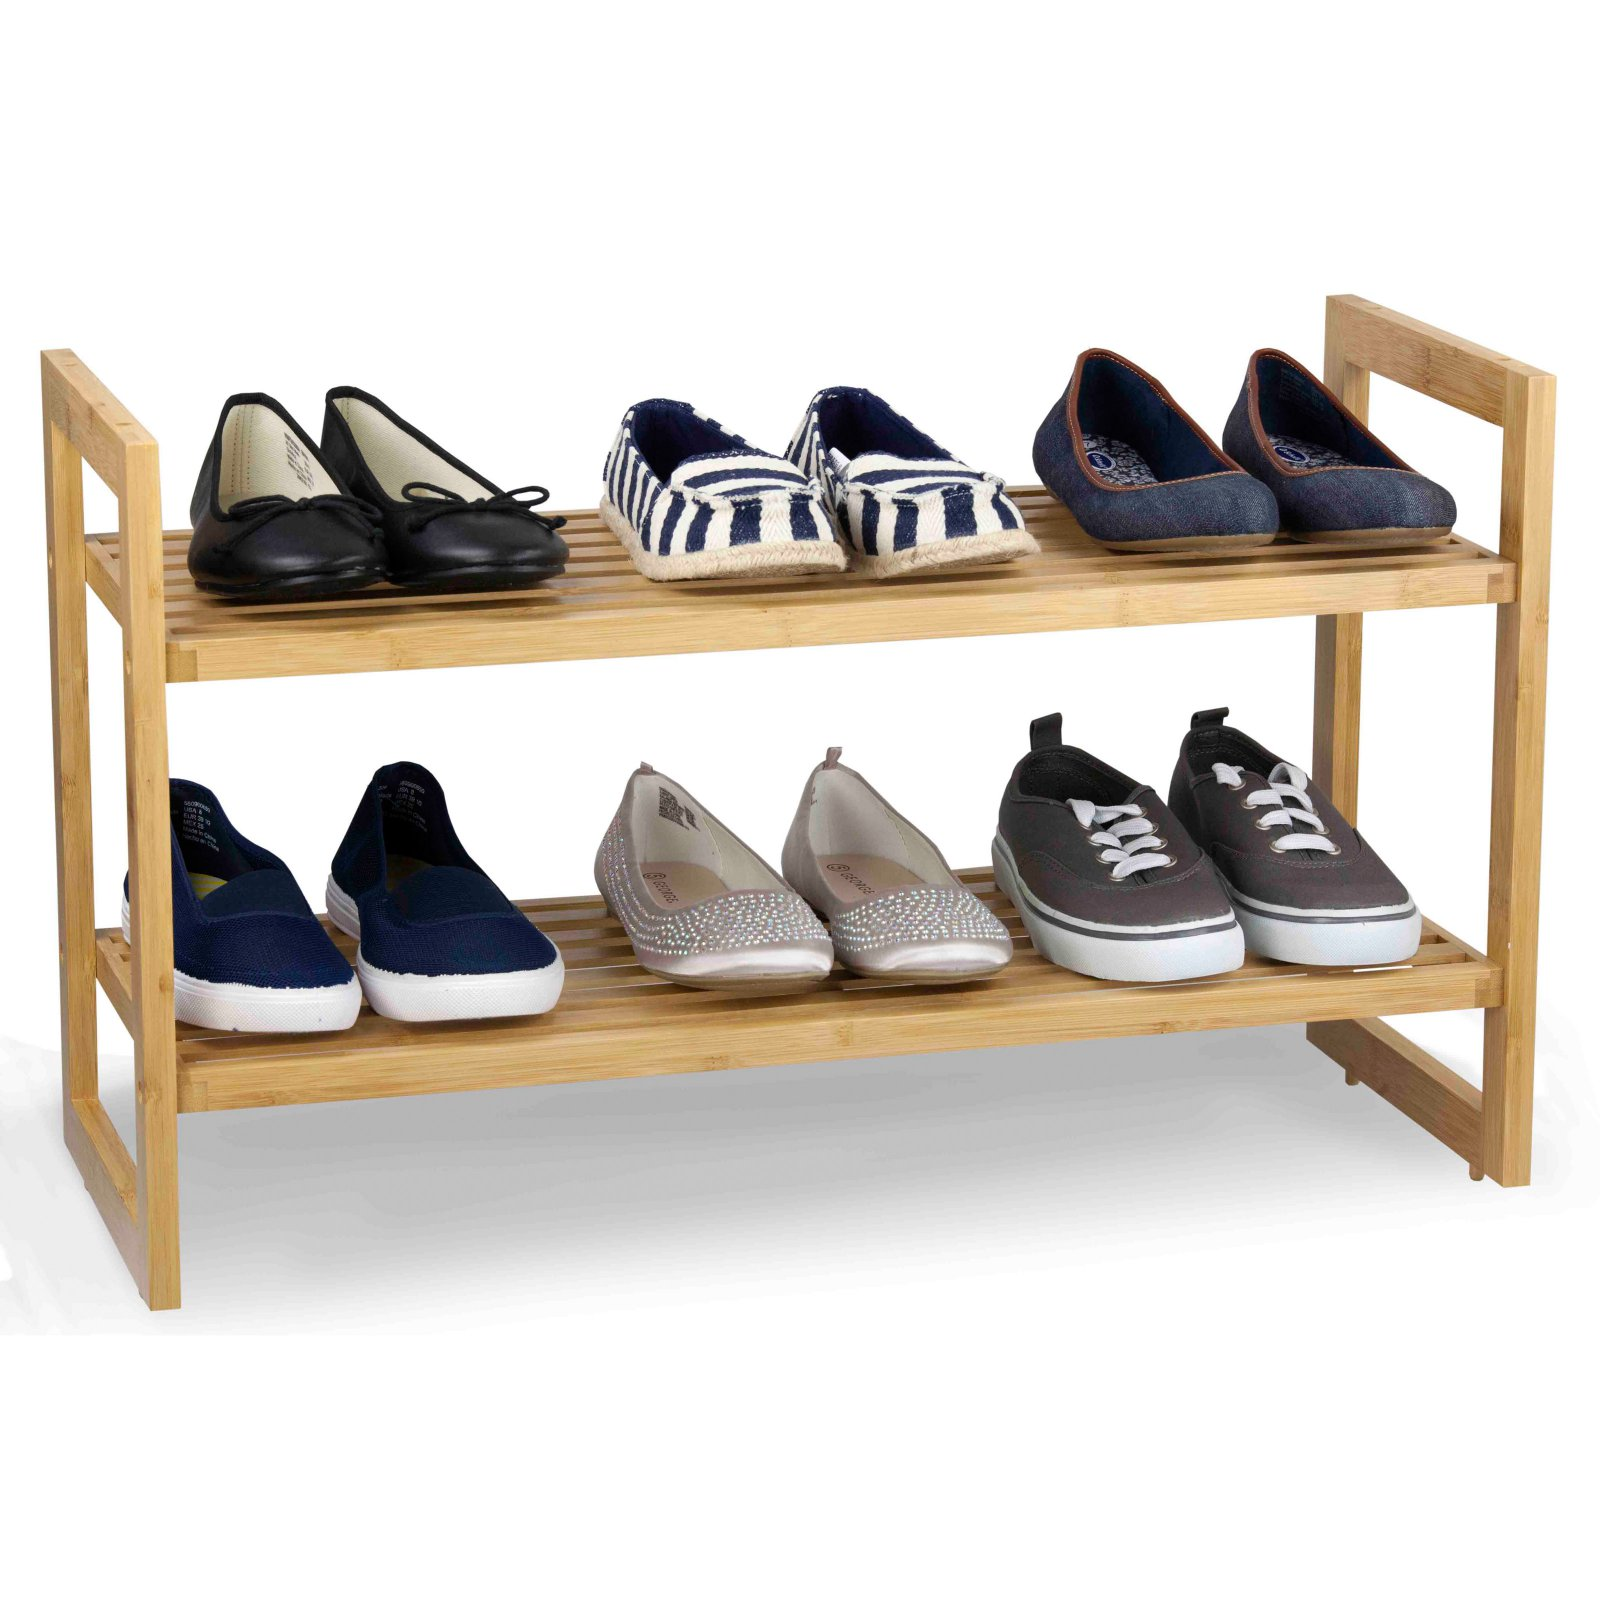 Sunbeam 2-Tier Bamboo Shoe Rack